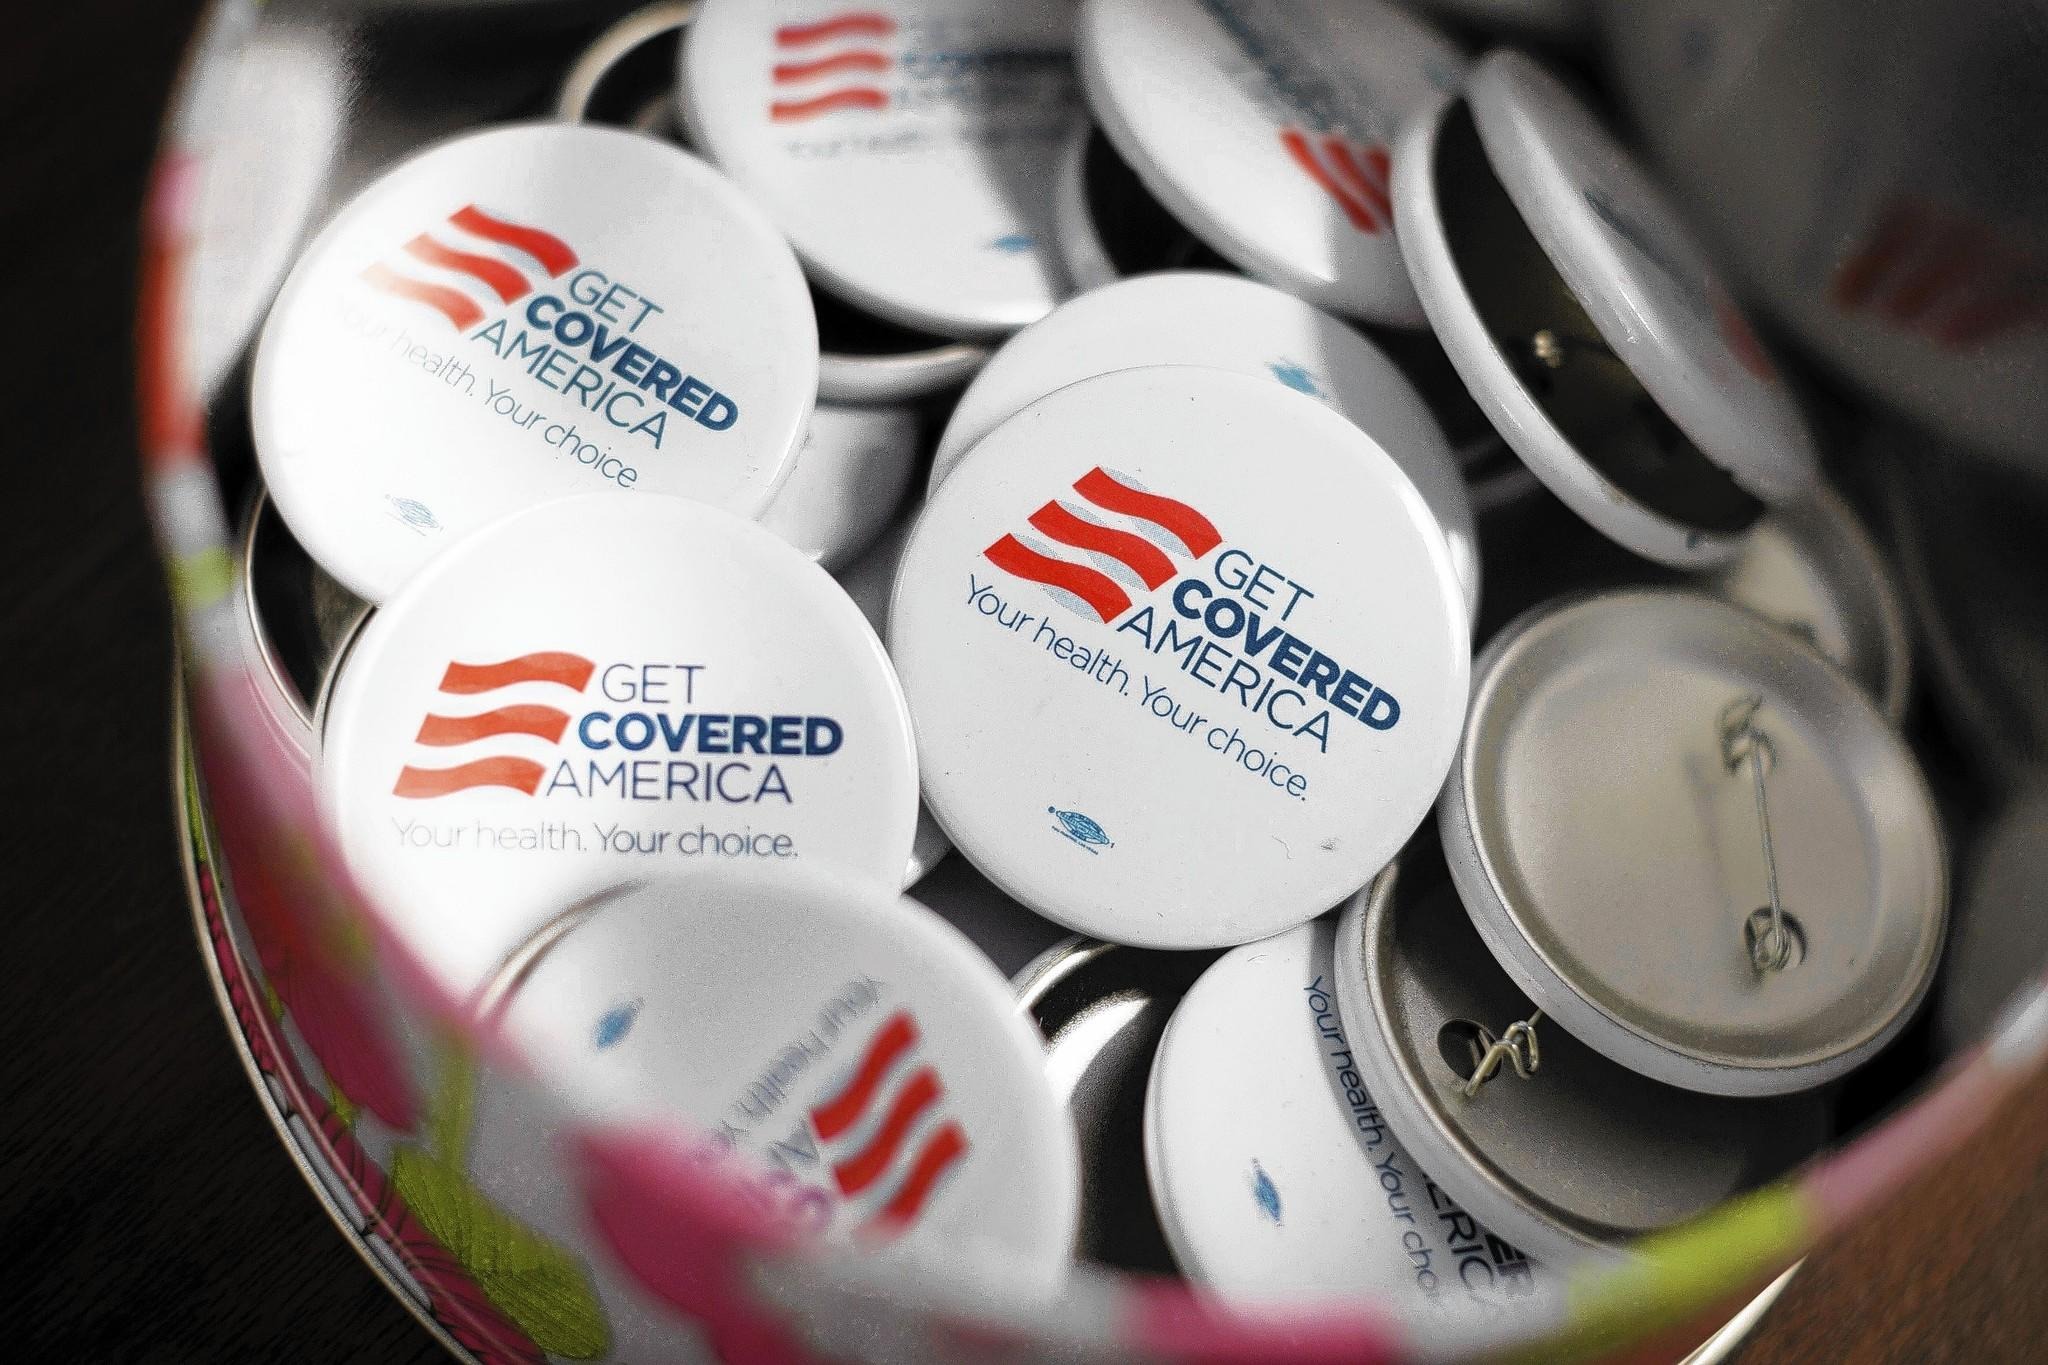 Obamacare was sold as simply a refinement of the current system. But it's a full-scale federal takeover.